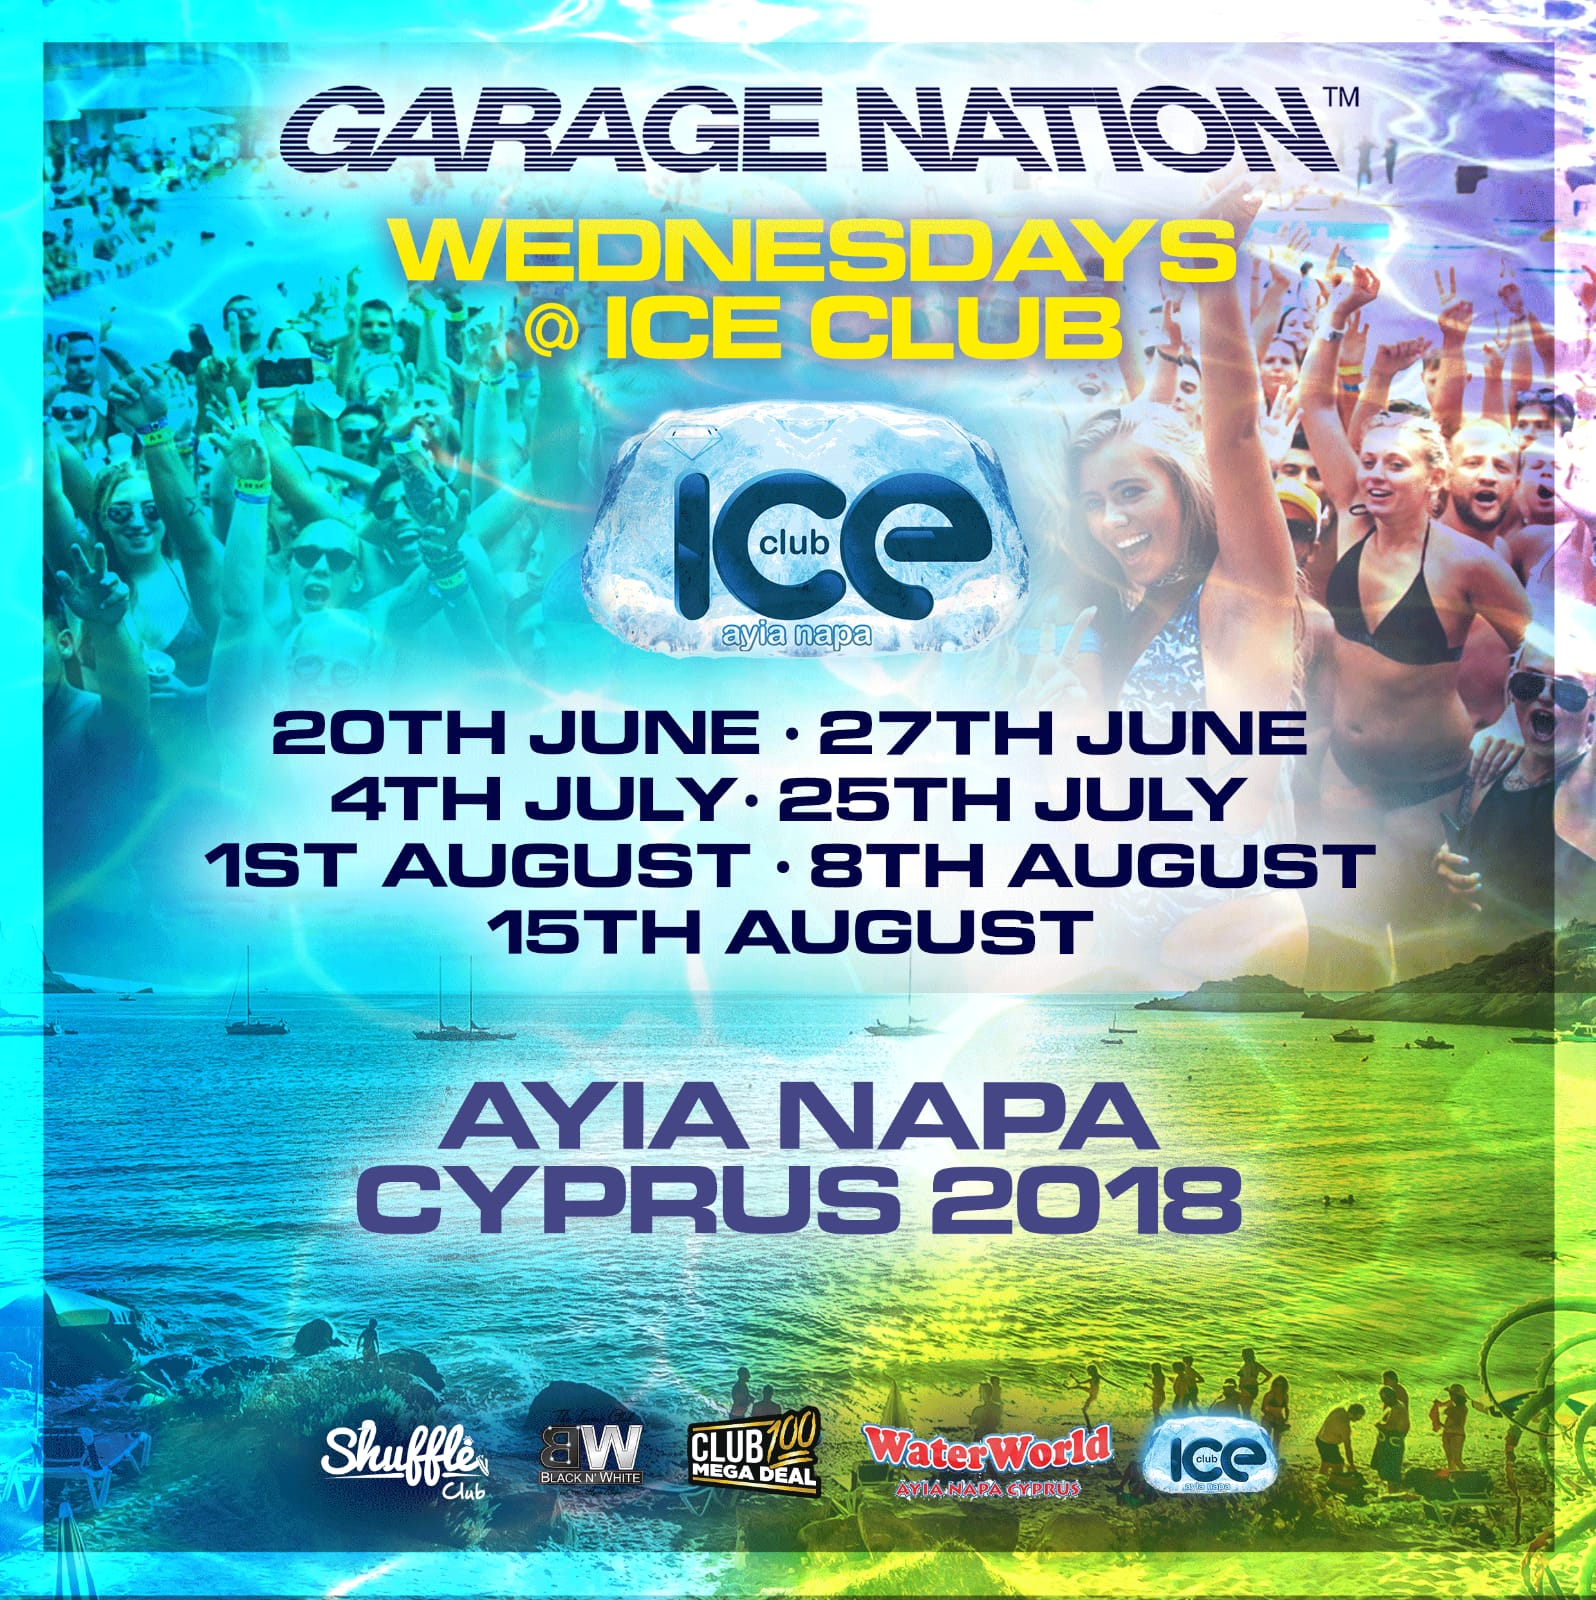 Garage Nation Ayia Napa